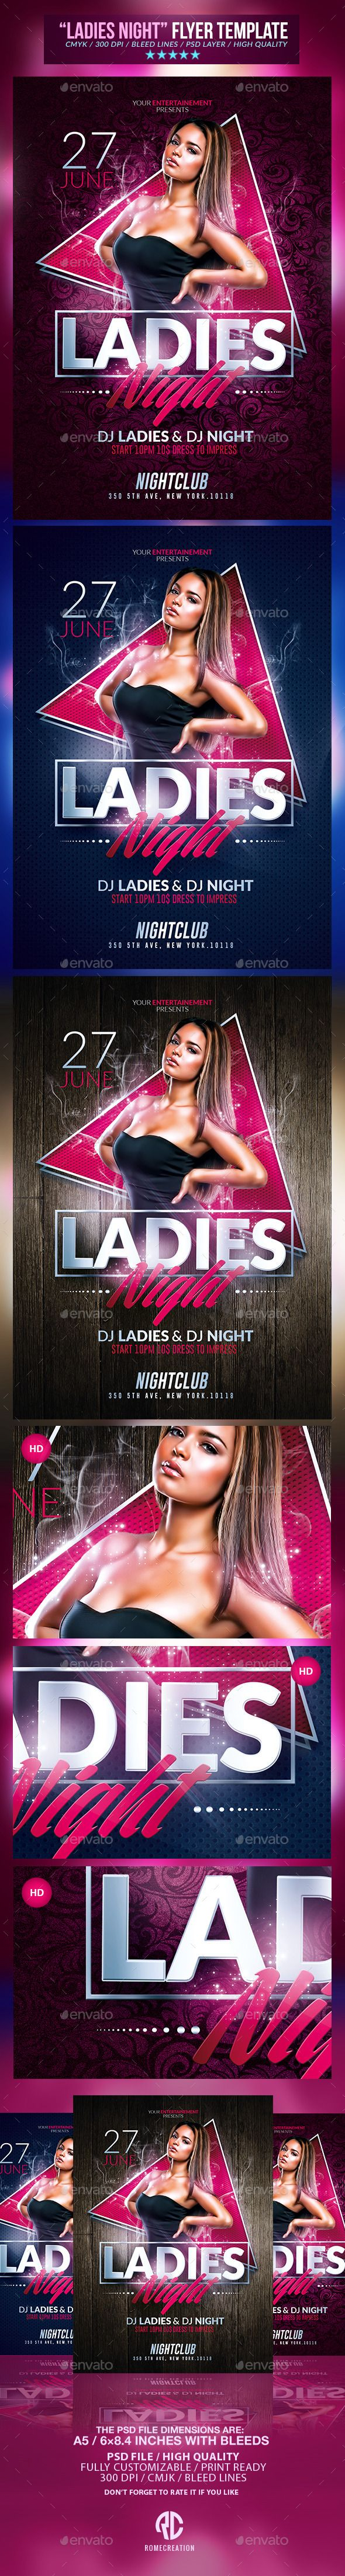 Ladies Night Party | Psd Flyer Templates http://graphicriver.net/item/ladies-night-party-psd-flyer-templates-/11280671 #template #ladies #night #club #nightclub #glam #glamour #beauty #flyer #poster #event #psd #stock #pack #girly #girl #creative #photoshop #romecreation